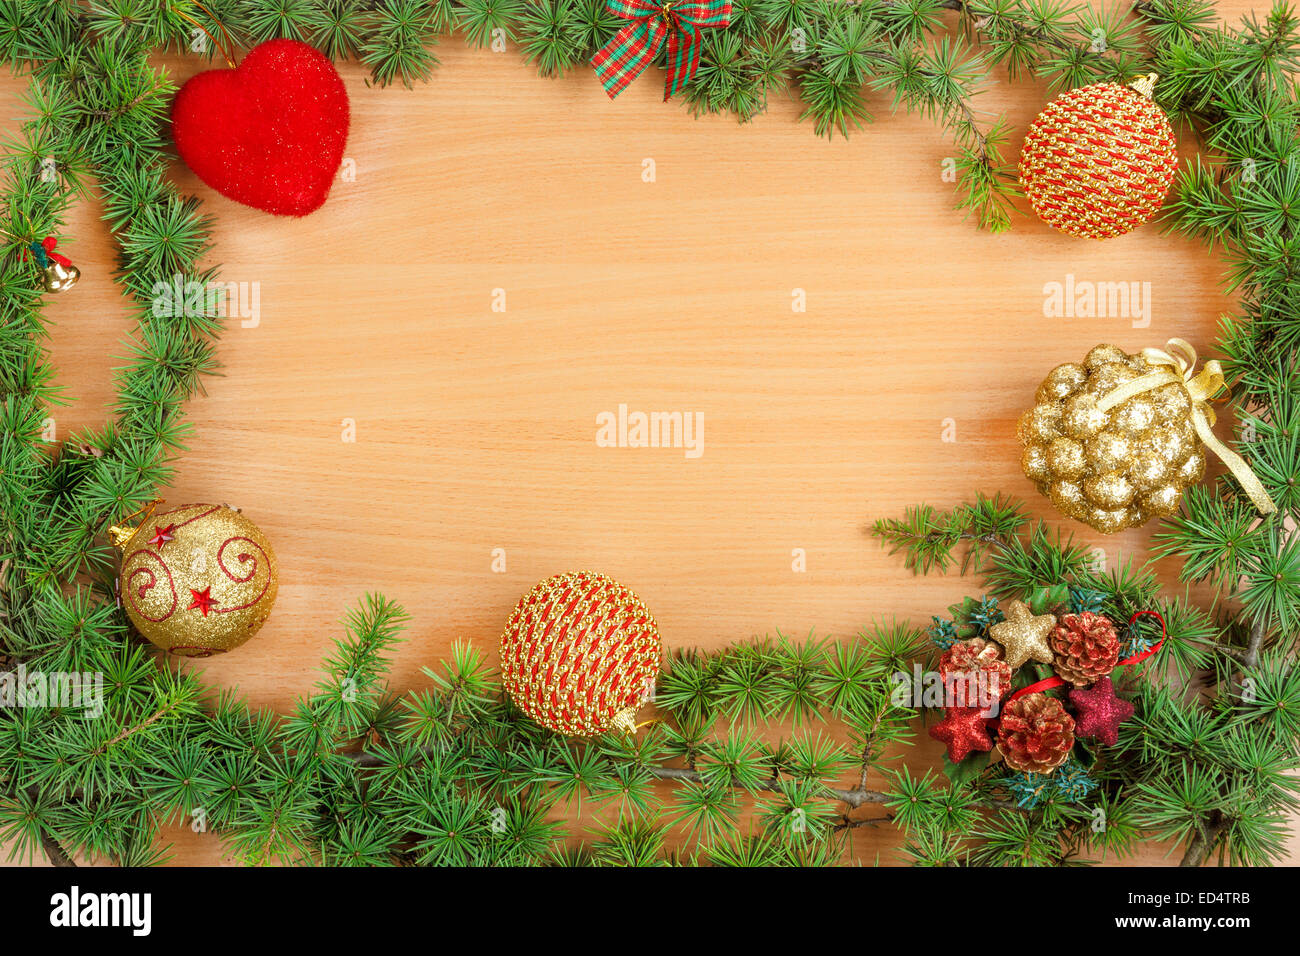 Christmas decoration with fir tree  and ornamentals on wood board with copyspace - Stock Image